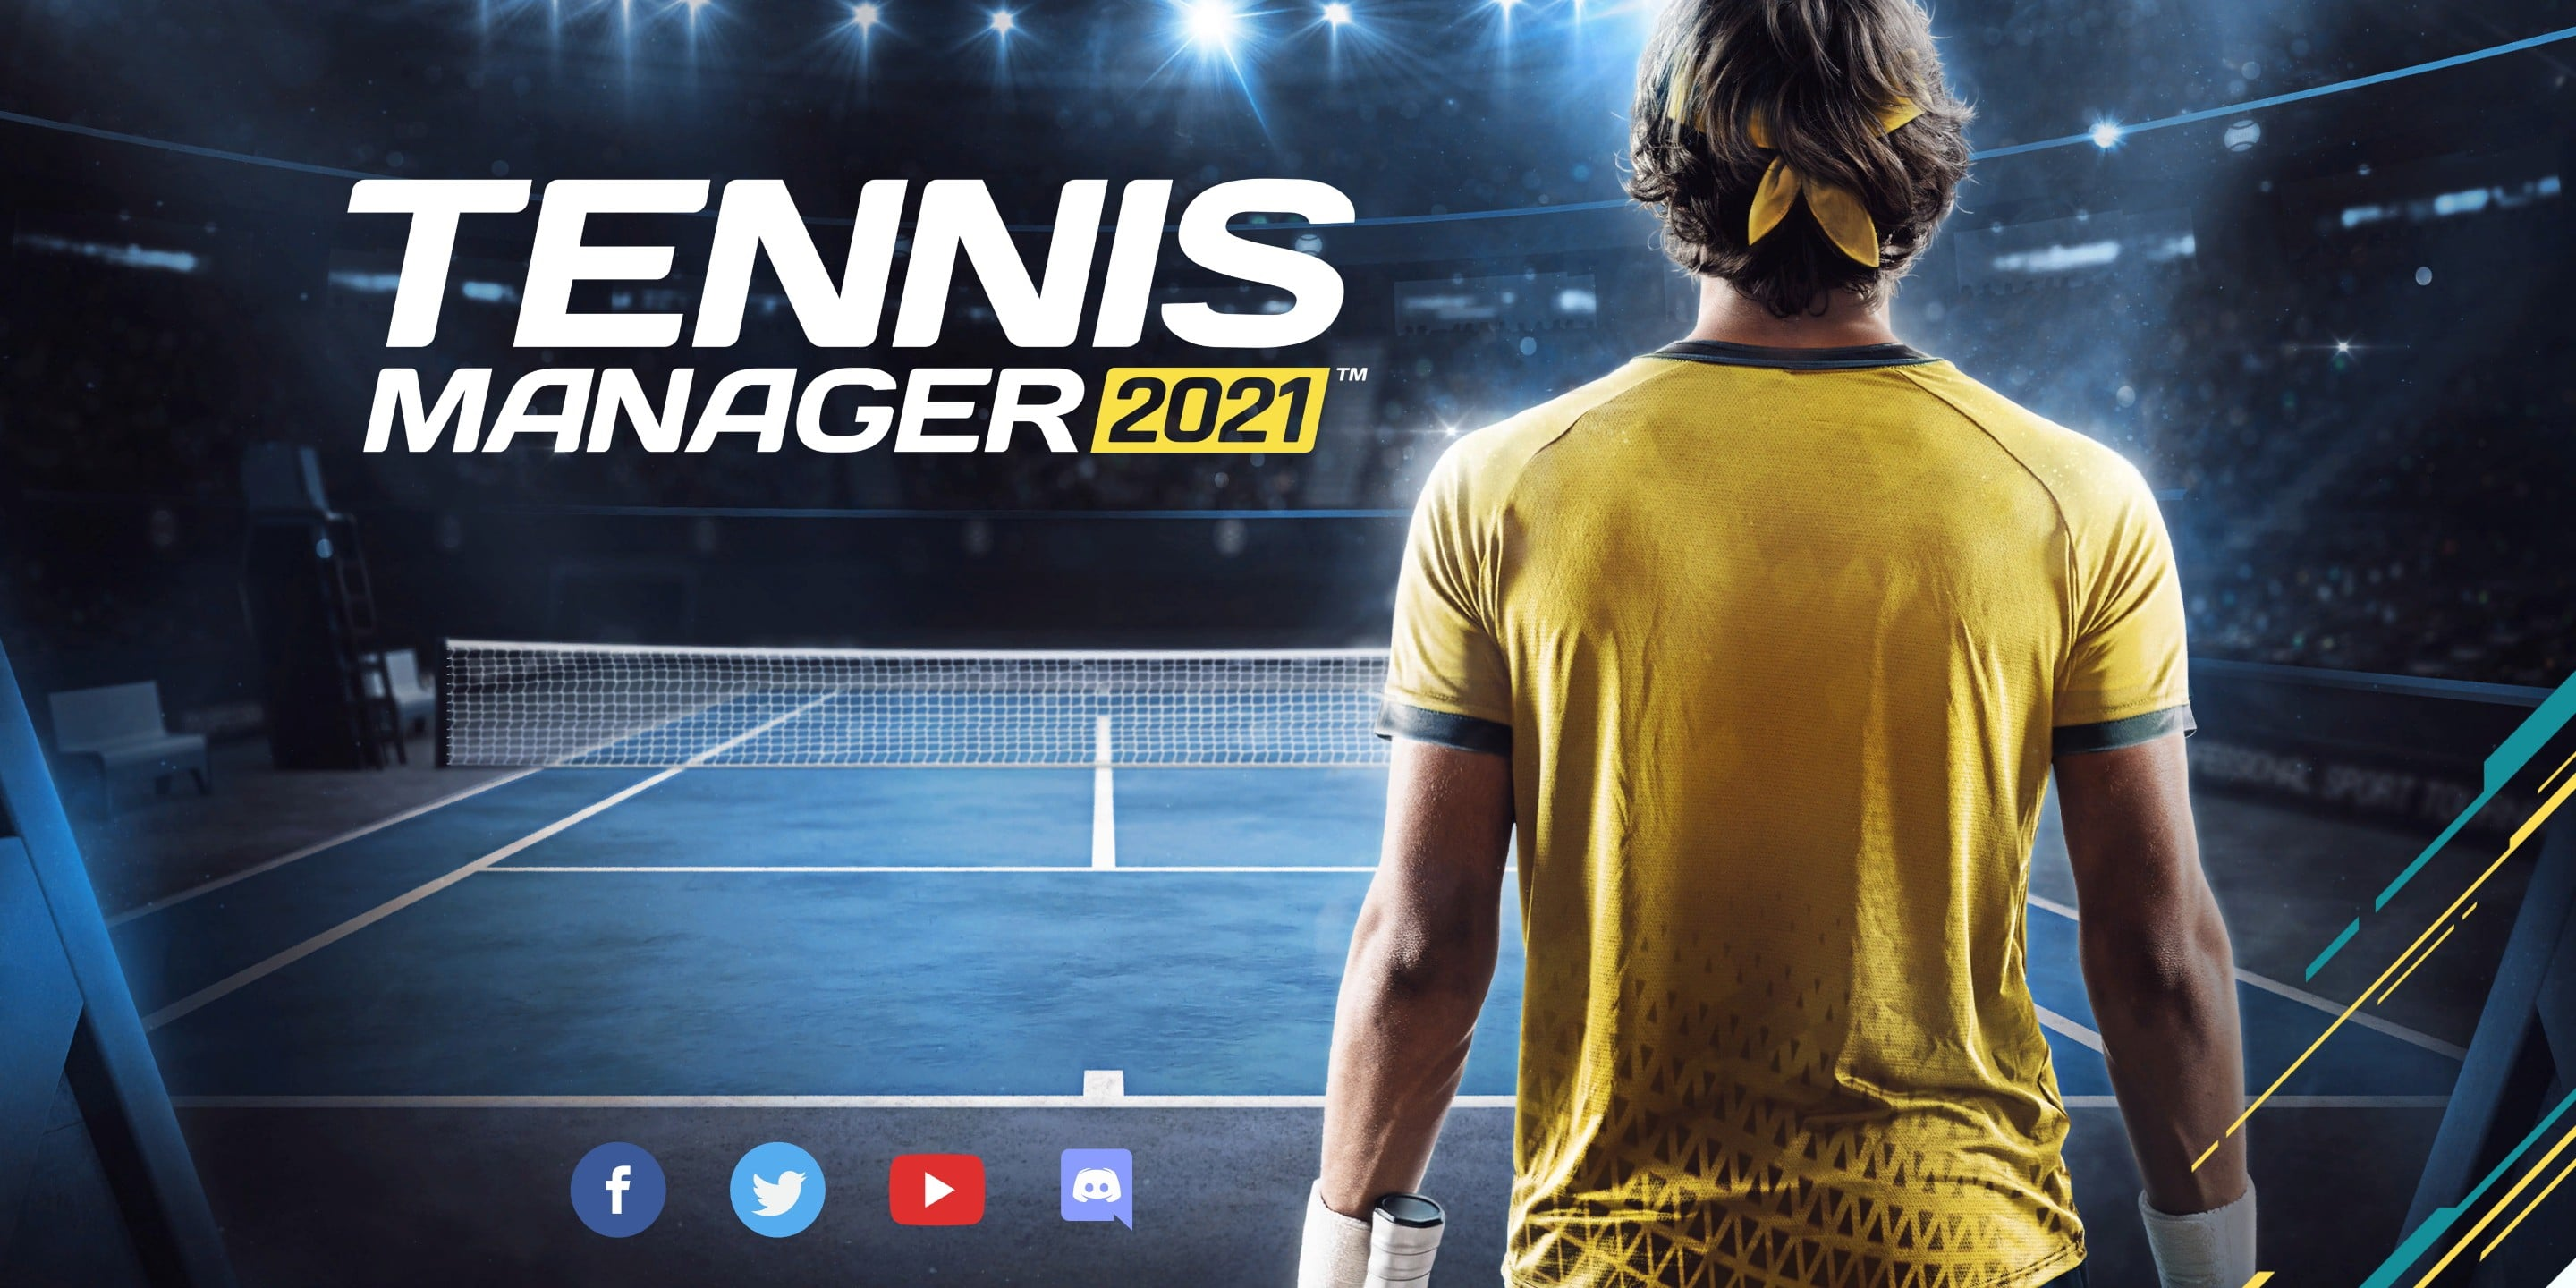 What is Tennis Manager 2021? (It's a game!)